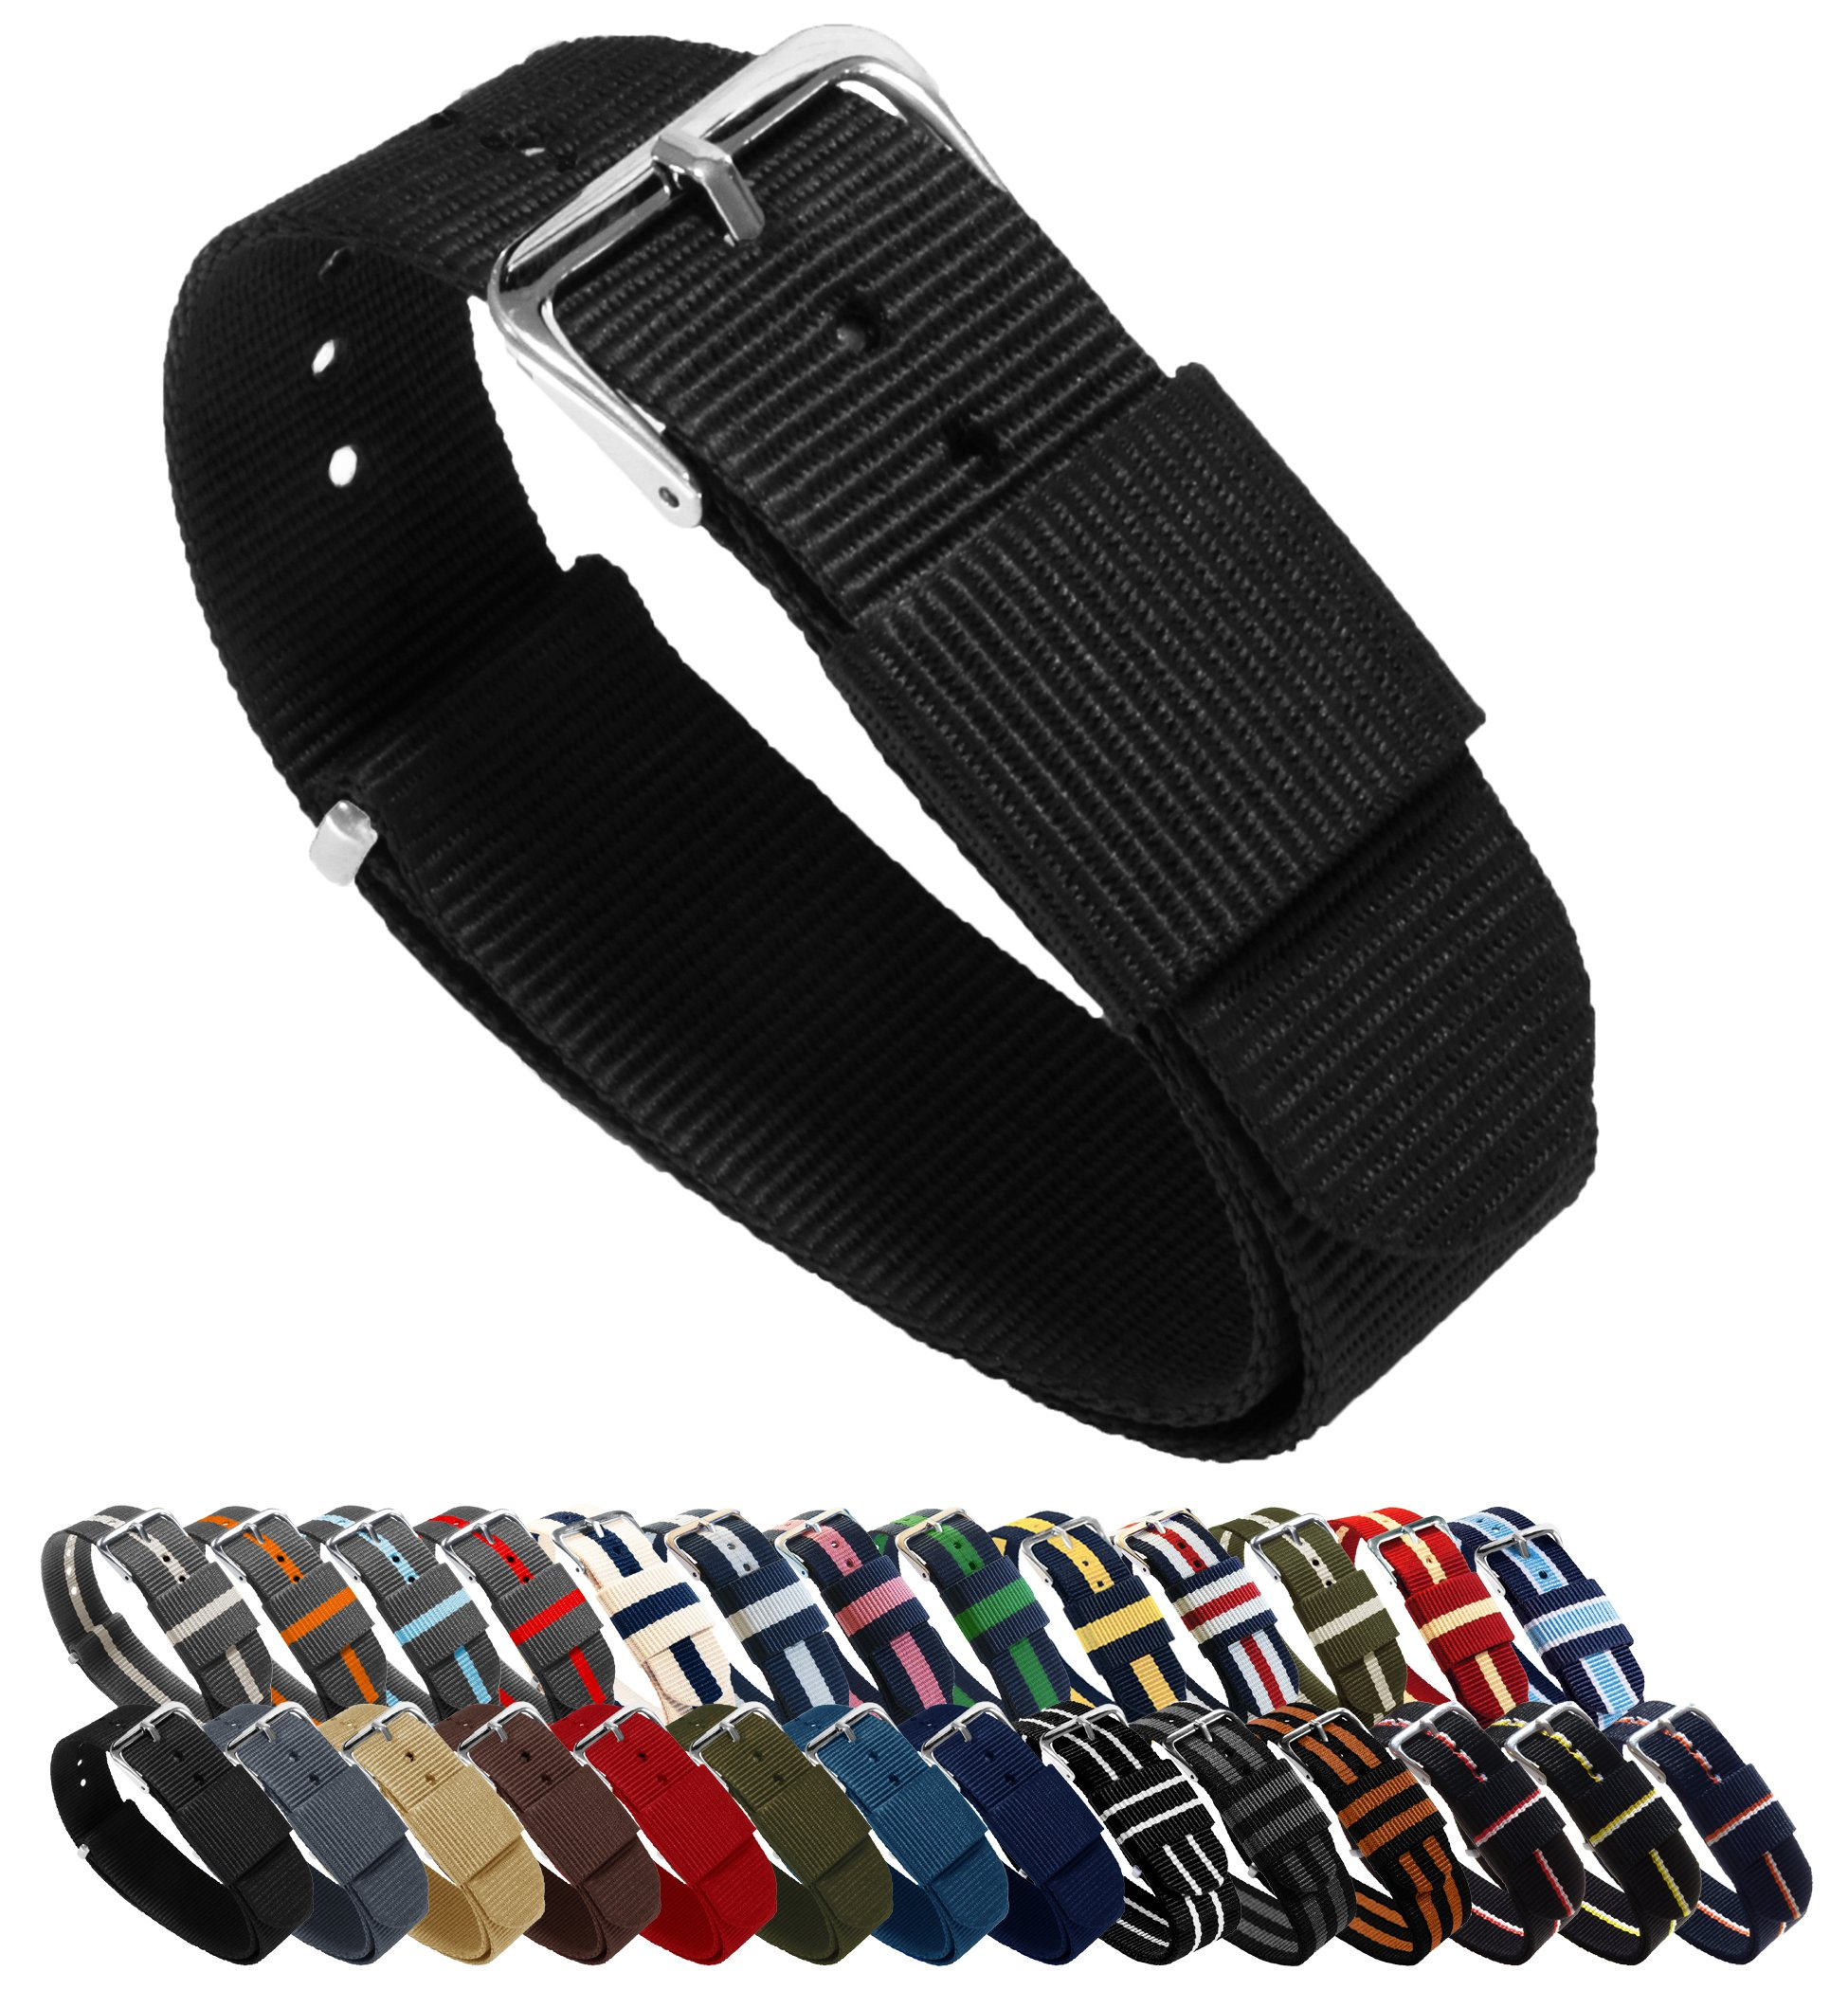 BARTON Watch Bands - Choice of Color, Length & Width (18mm, 20mm, 22mm or 24mm) - Black 18mm - Standard Length by Barton Watch Bands